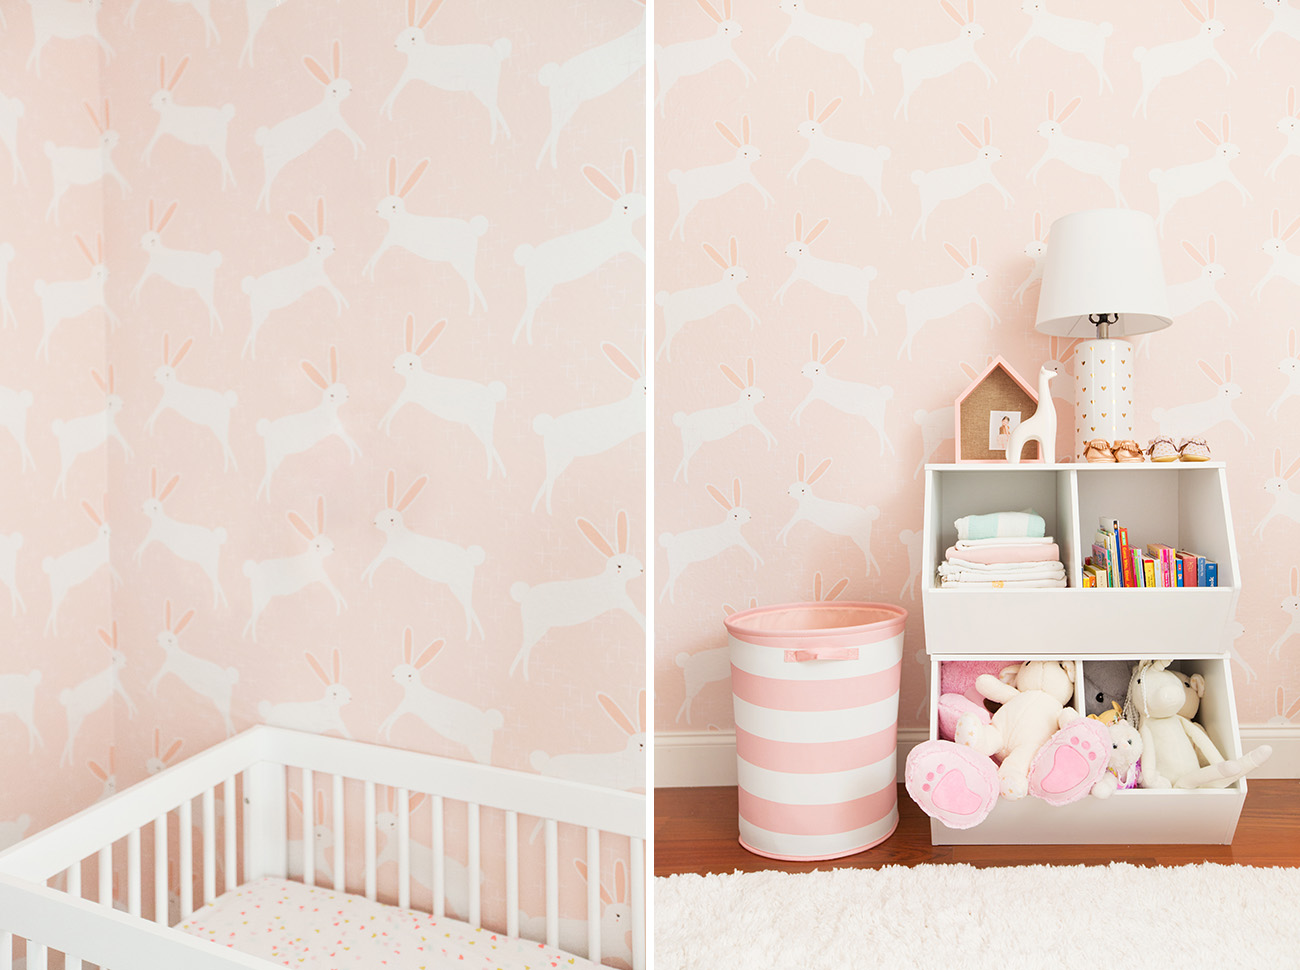 Pink Bunny Nursery for a Baby Girl